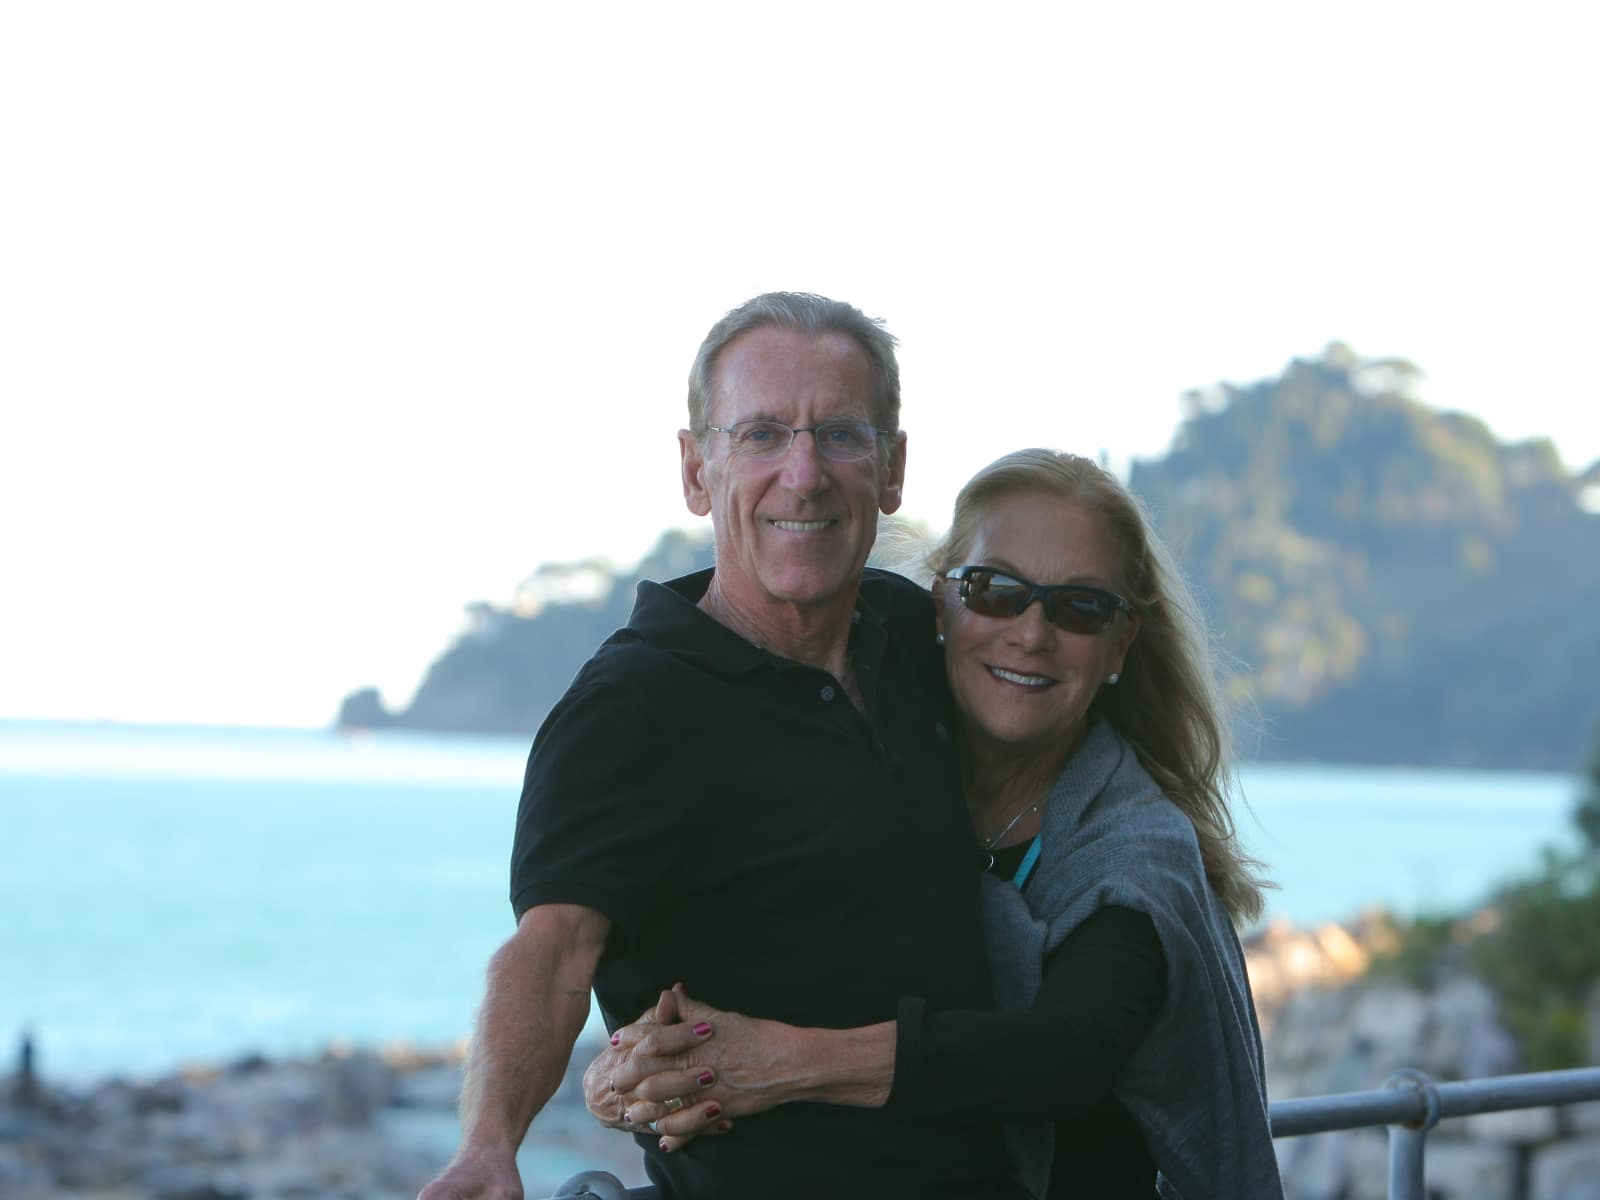 June & James (jim) from Aptos, California, United States